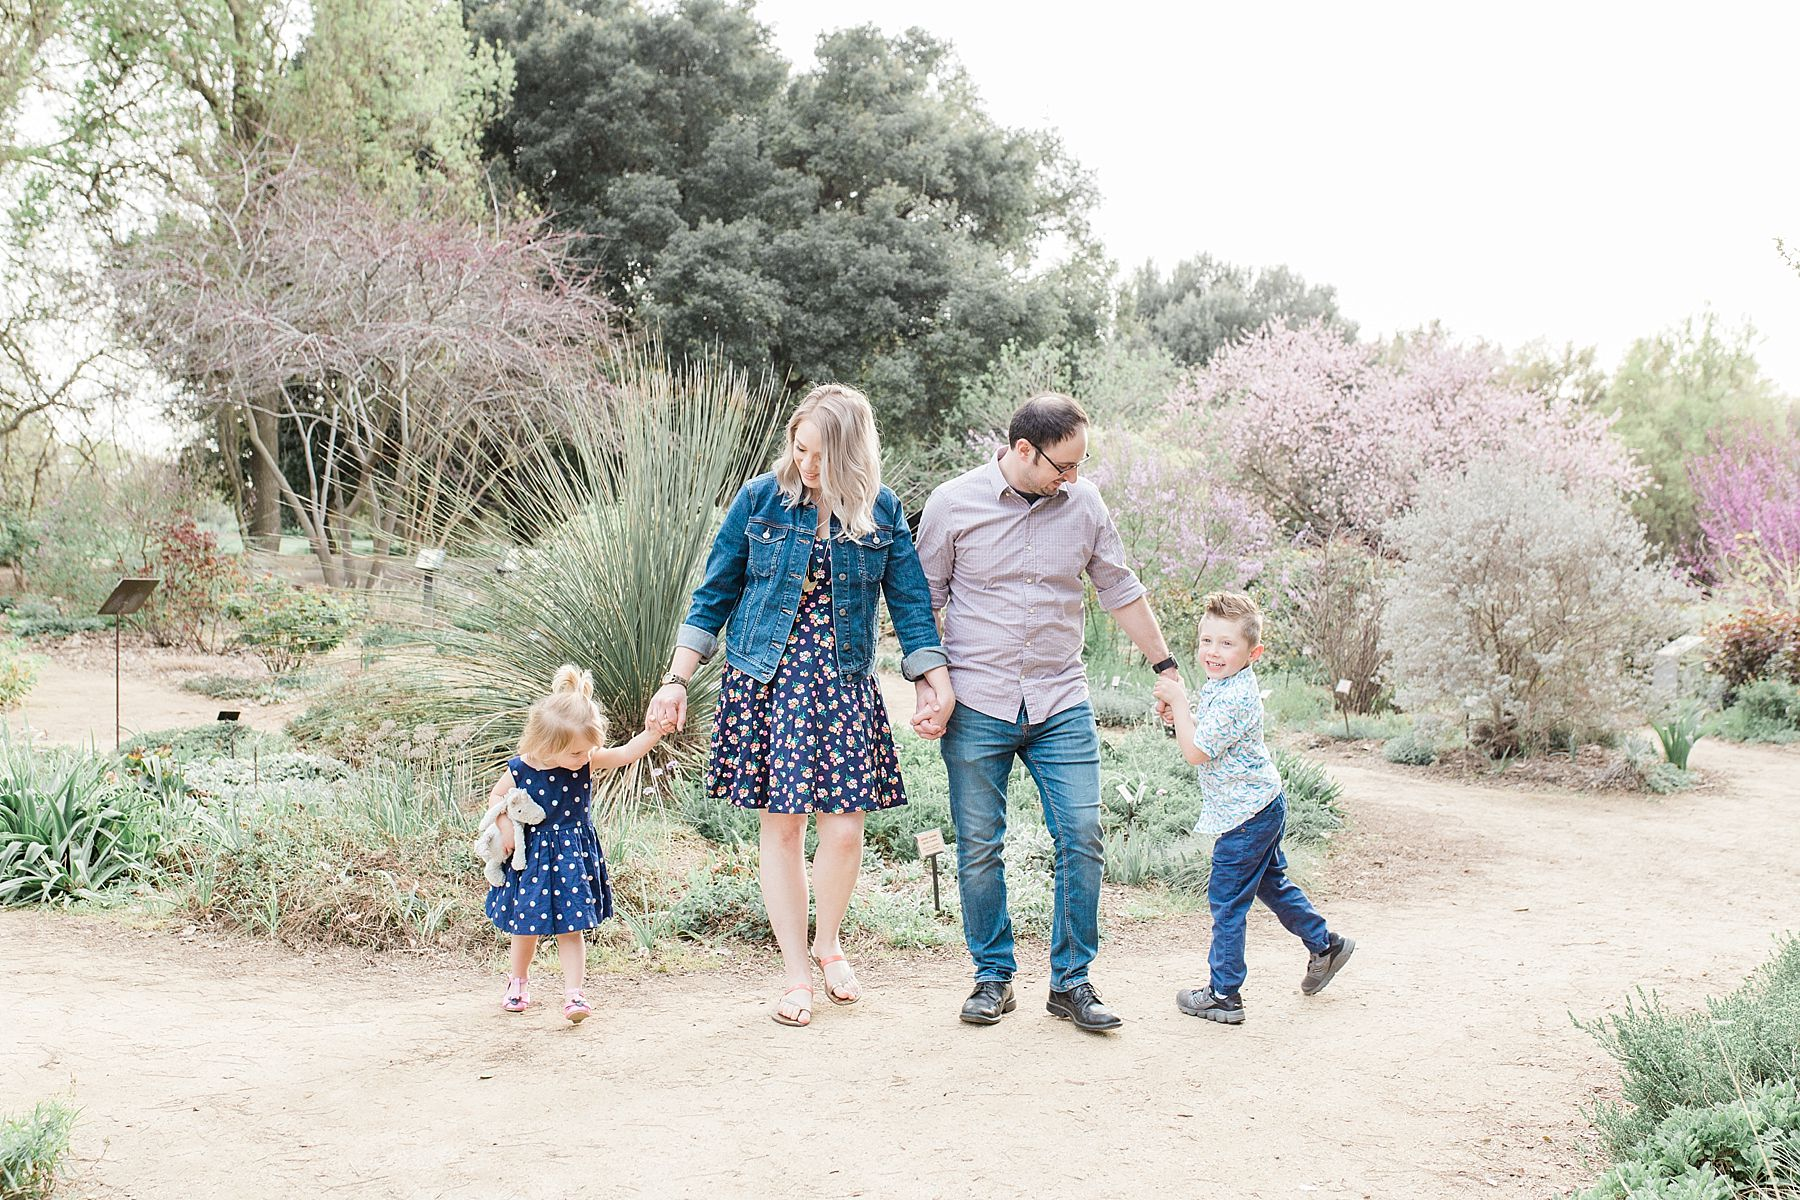 Davis Family Portraits at UC Davis Arboretum - Padovani Family - Ashley Baumgartner - Davis Family Photographer_0001.jpg